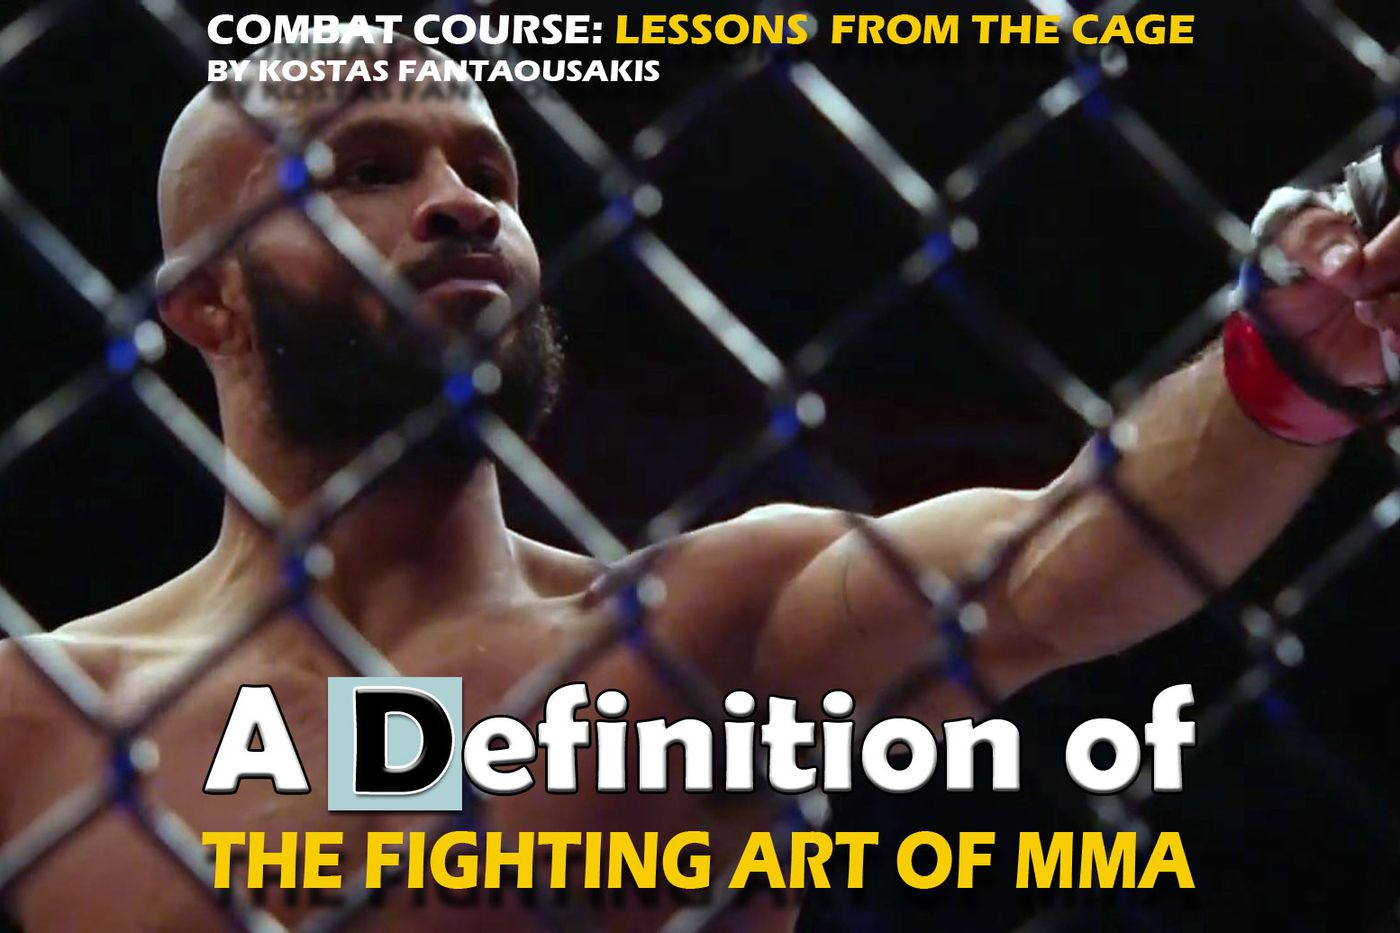 The Fighting Art Of Mma Defined Bloody Elbow